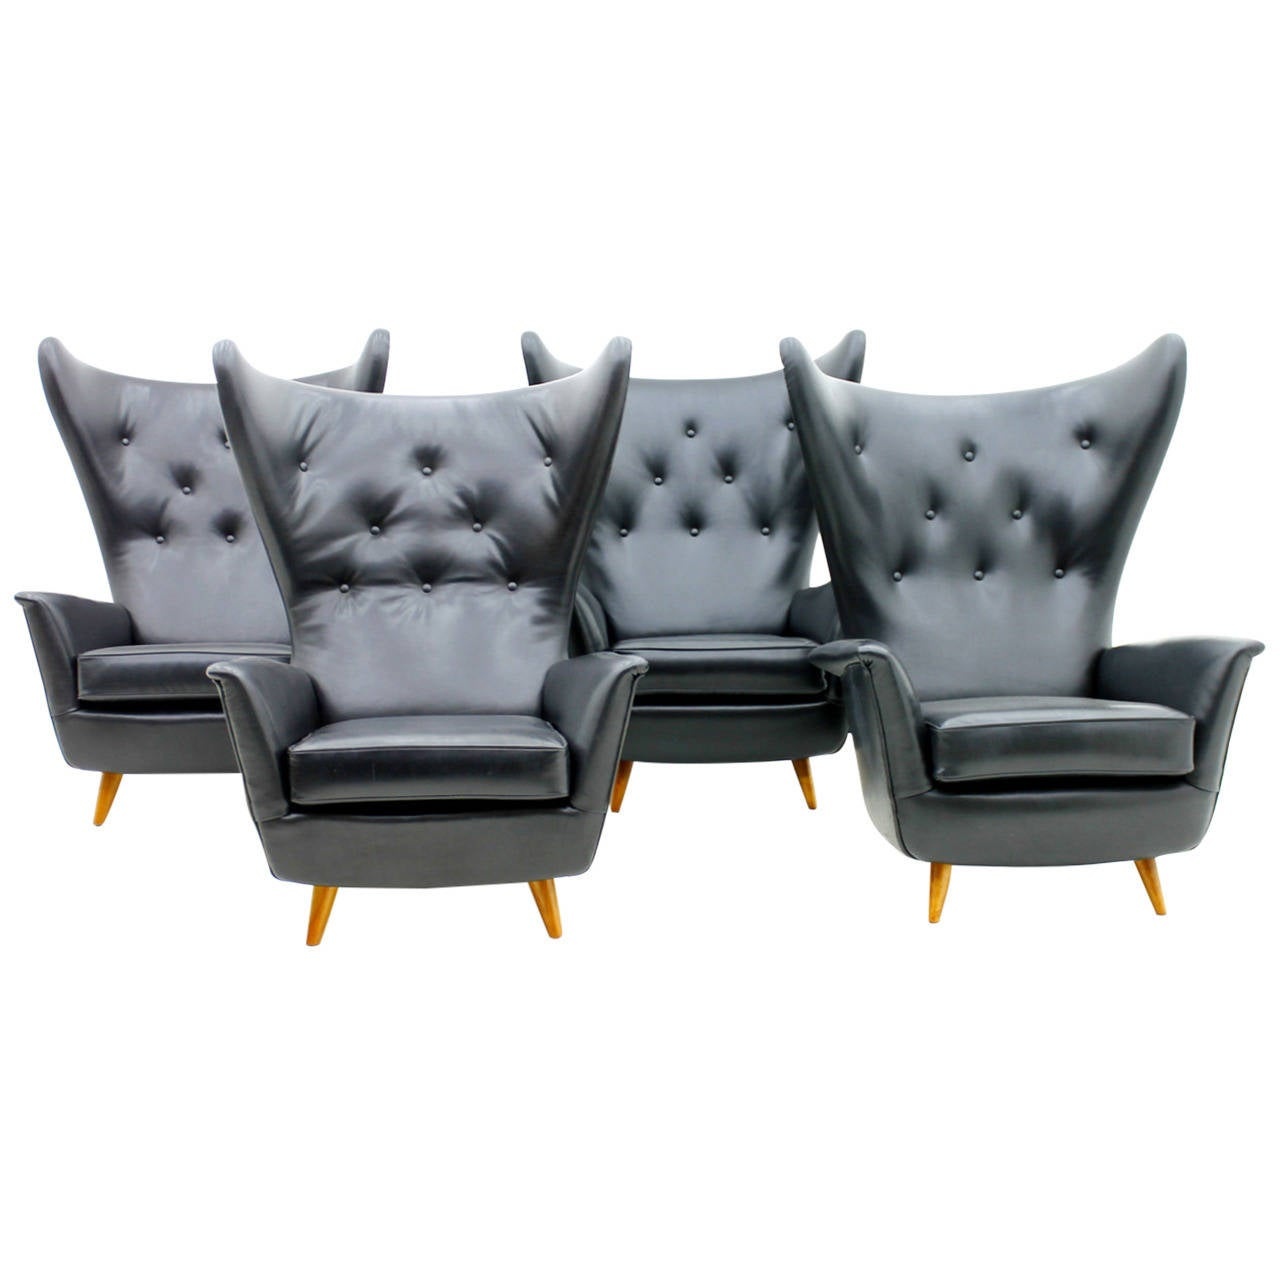 Rare Set of Four Black Leather Wing Lounge Chairs 1950s at 1stdibs